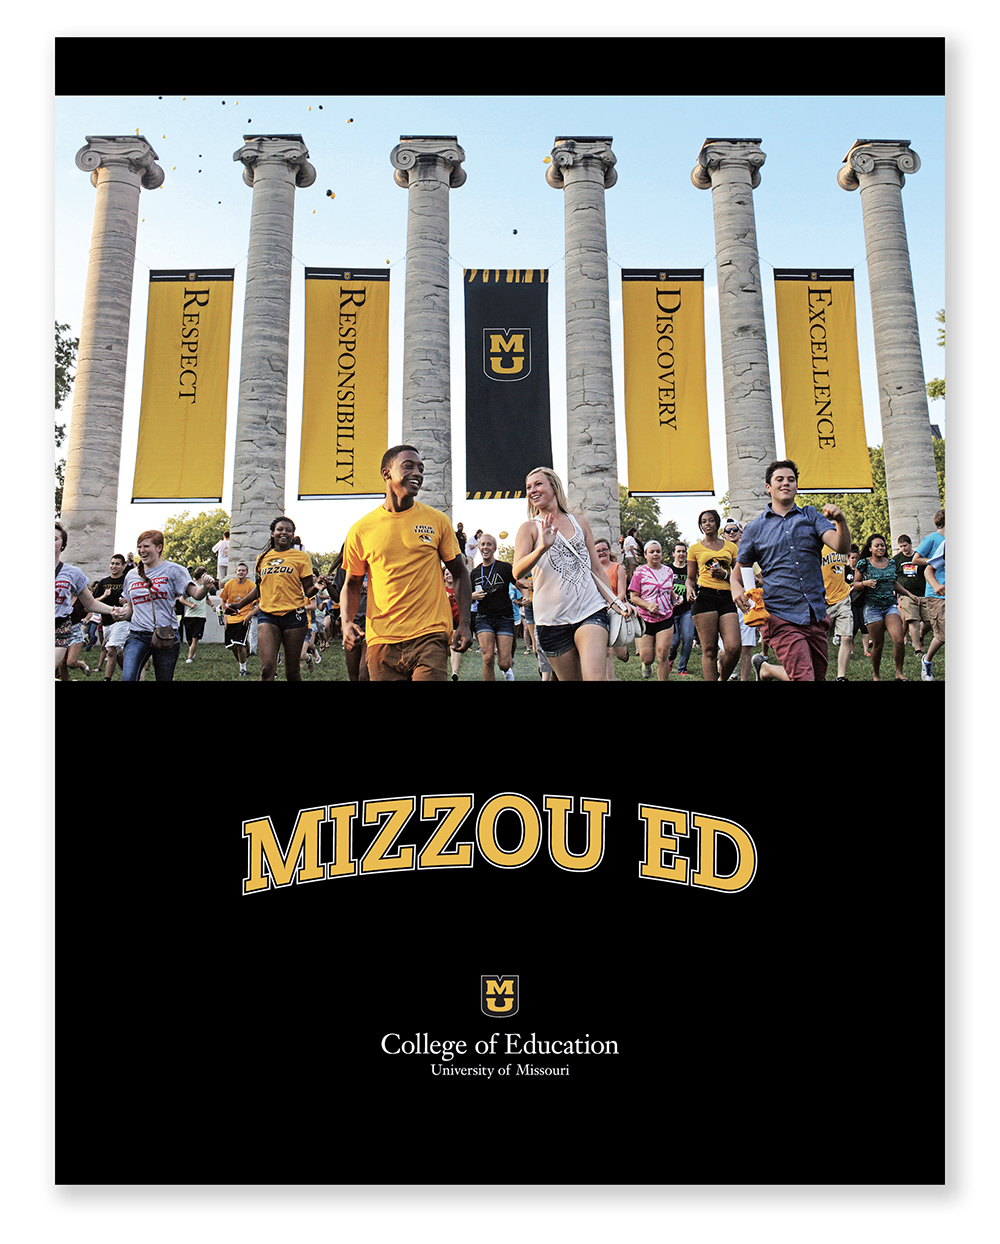 University of Missouri College of Education Viewbook 2017